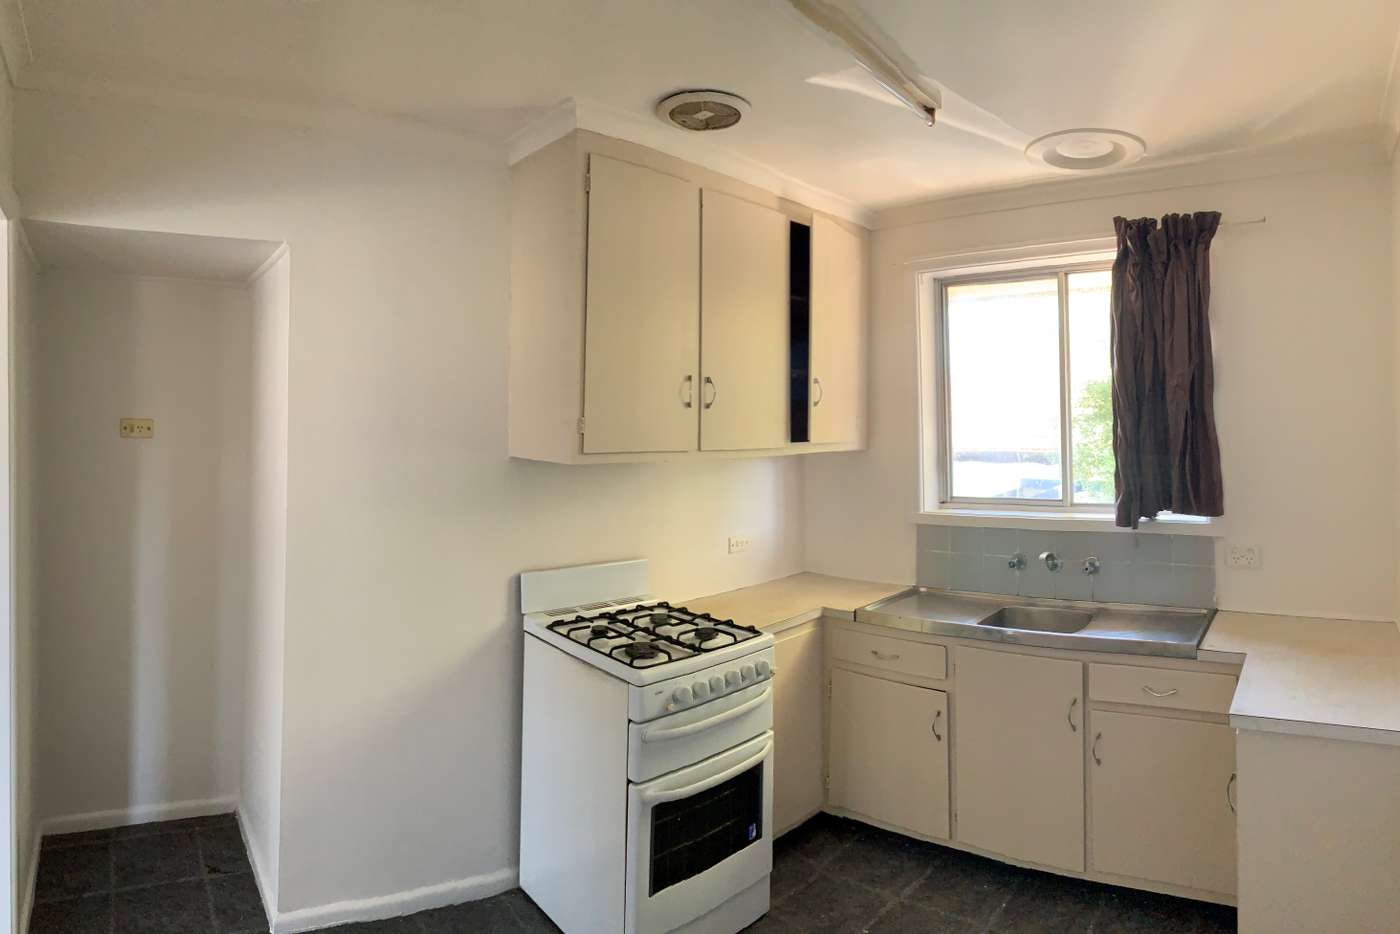 Main view of Homely unit listing, 1/54 Efron Street, Nunawading VIC 3131